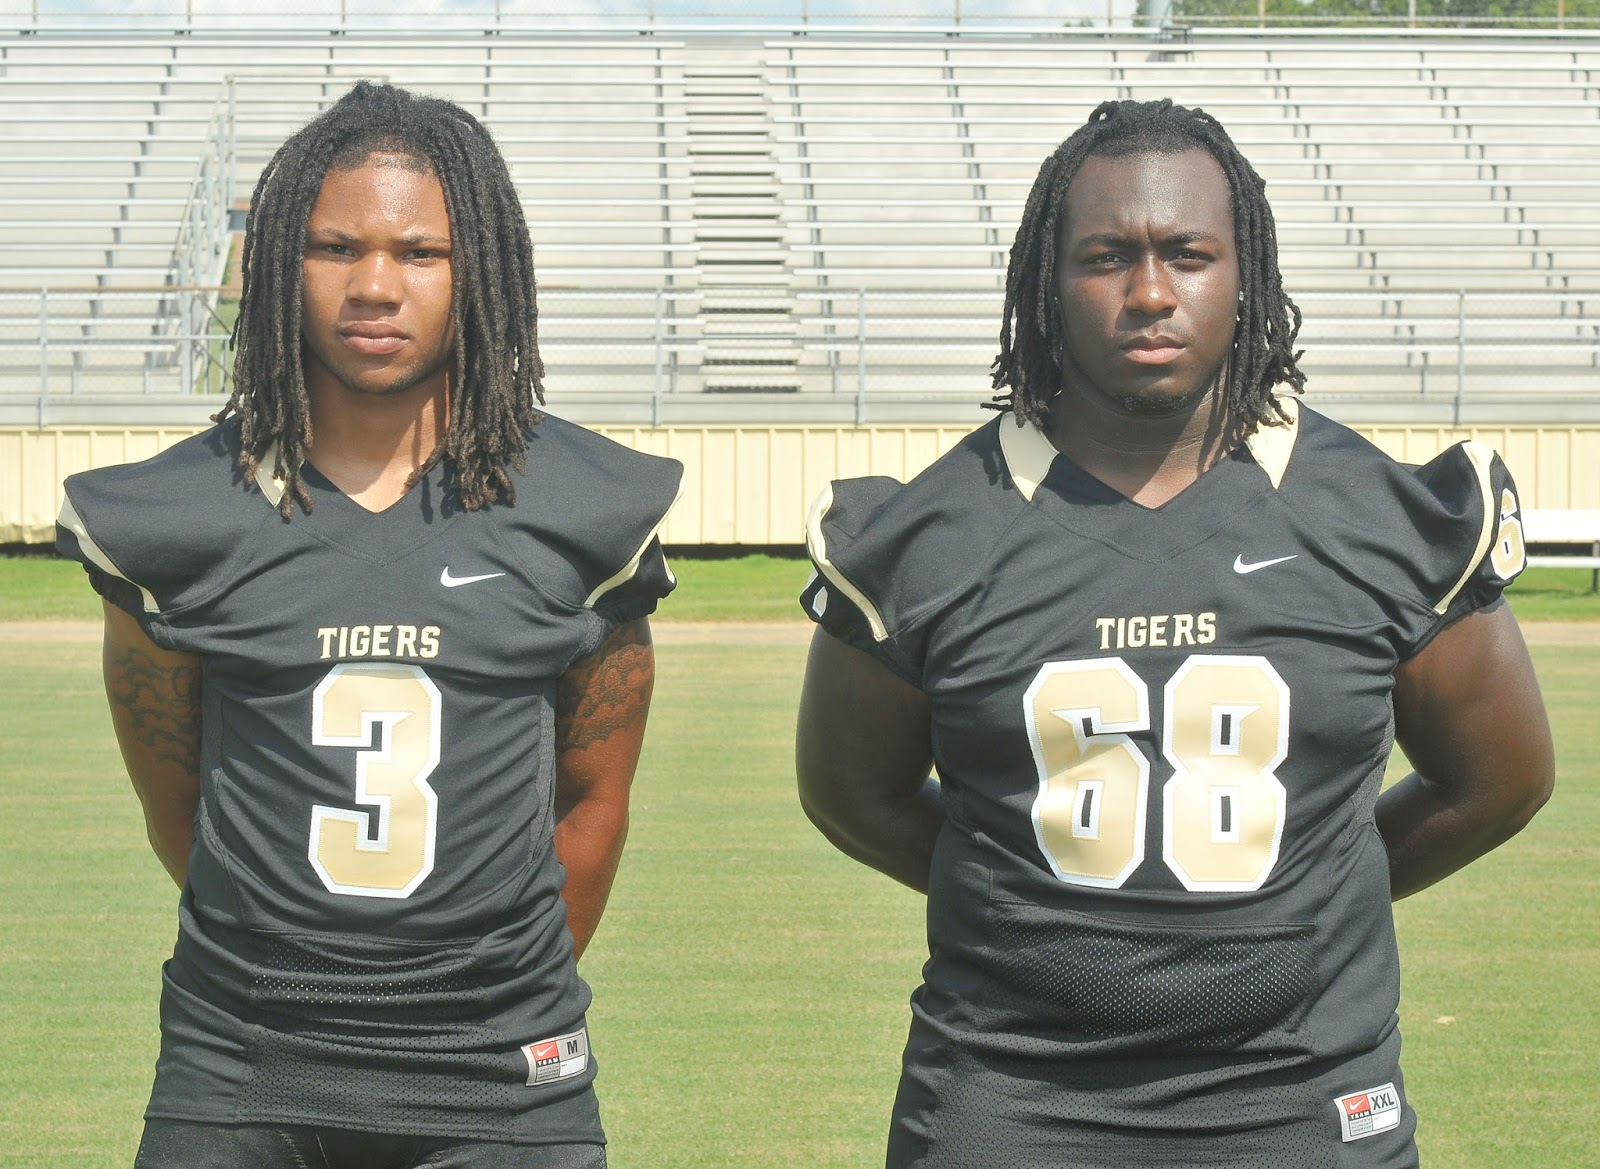 Tallahatchie countians make nemcc football team tiger wire the northeast mississippi community college football team has opened the season with a 1 2 record and is currently tied for the lead in the mississippi sciox Images